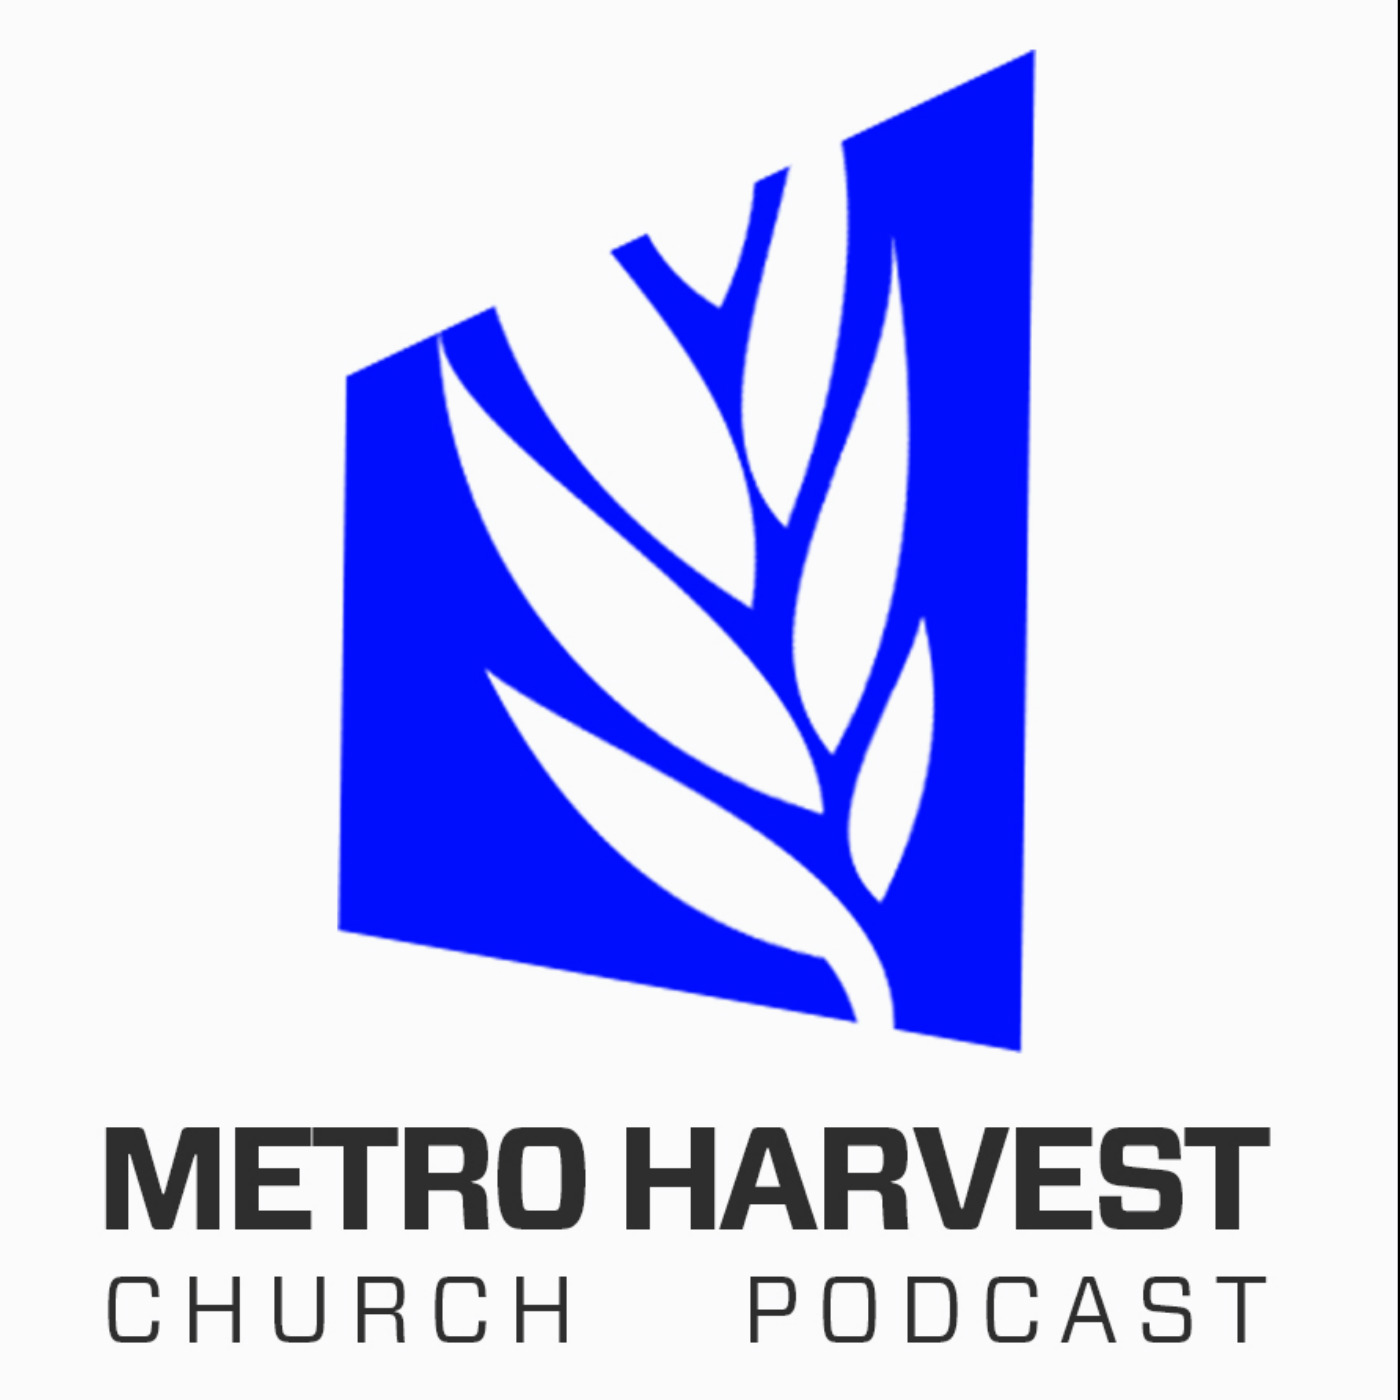 Metro Harvest Church Podcast